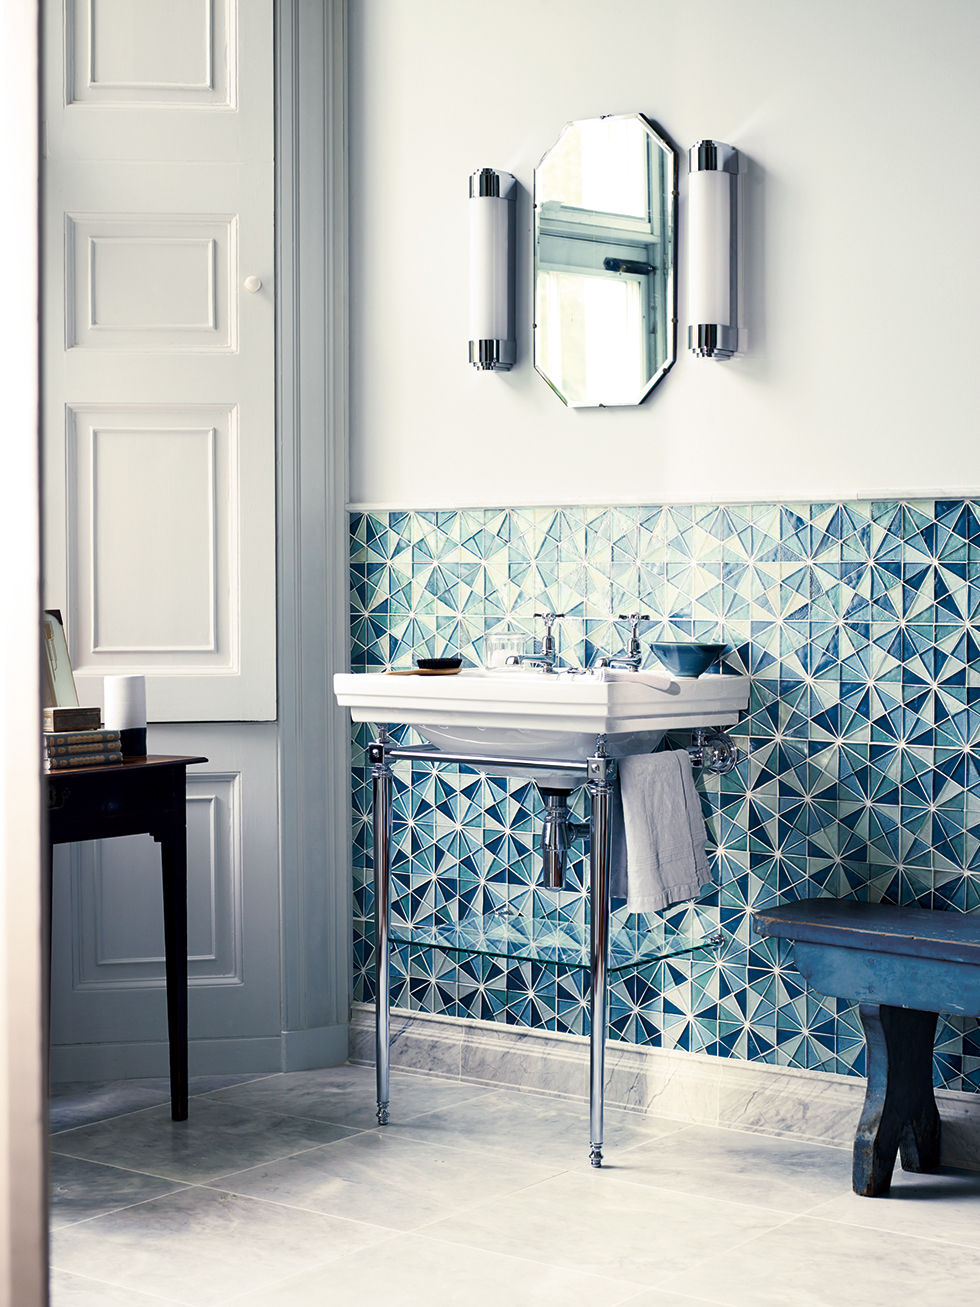 10 wallcovering trends for ss15 real homes Fired tiles